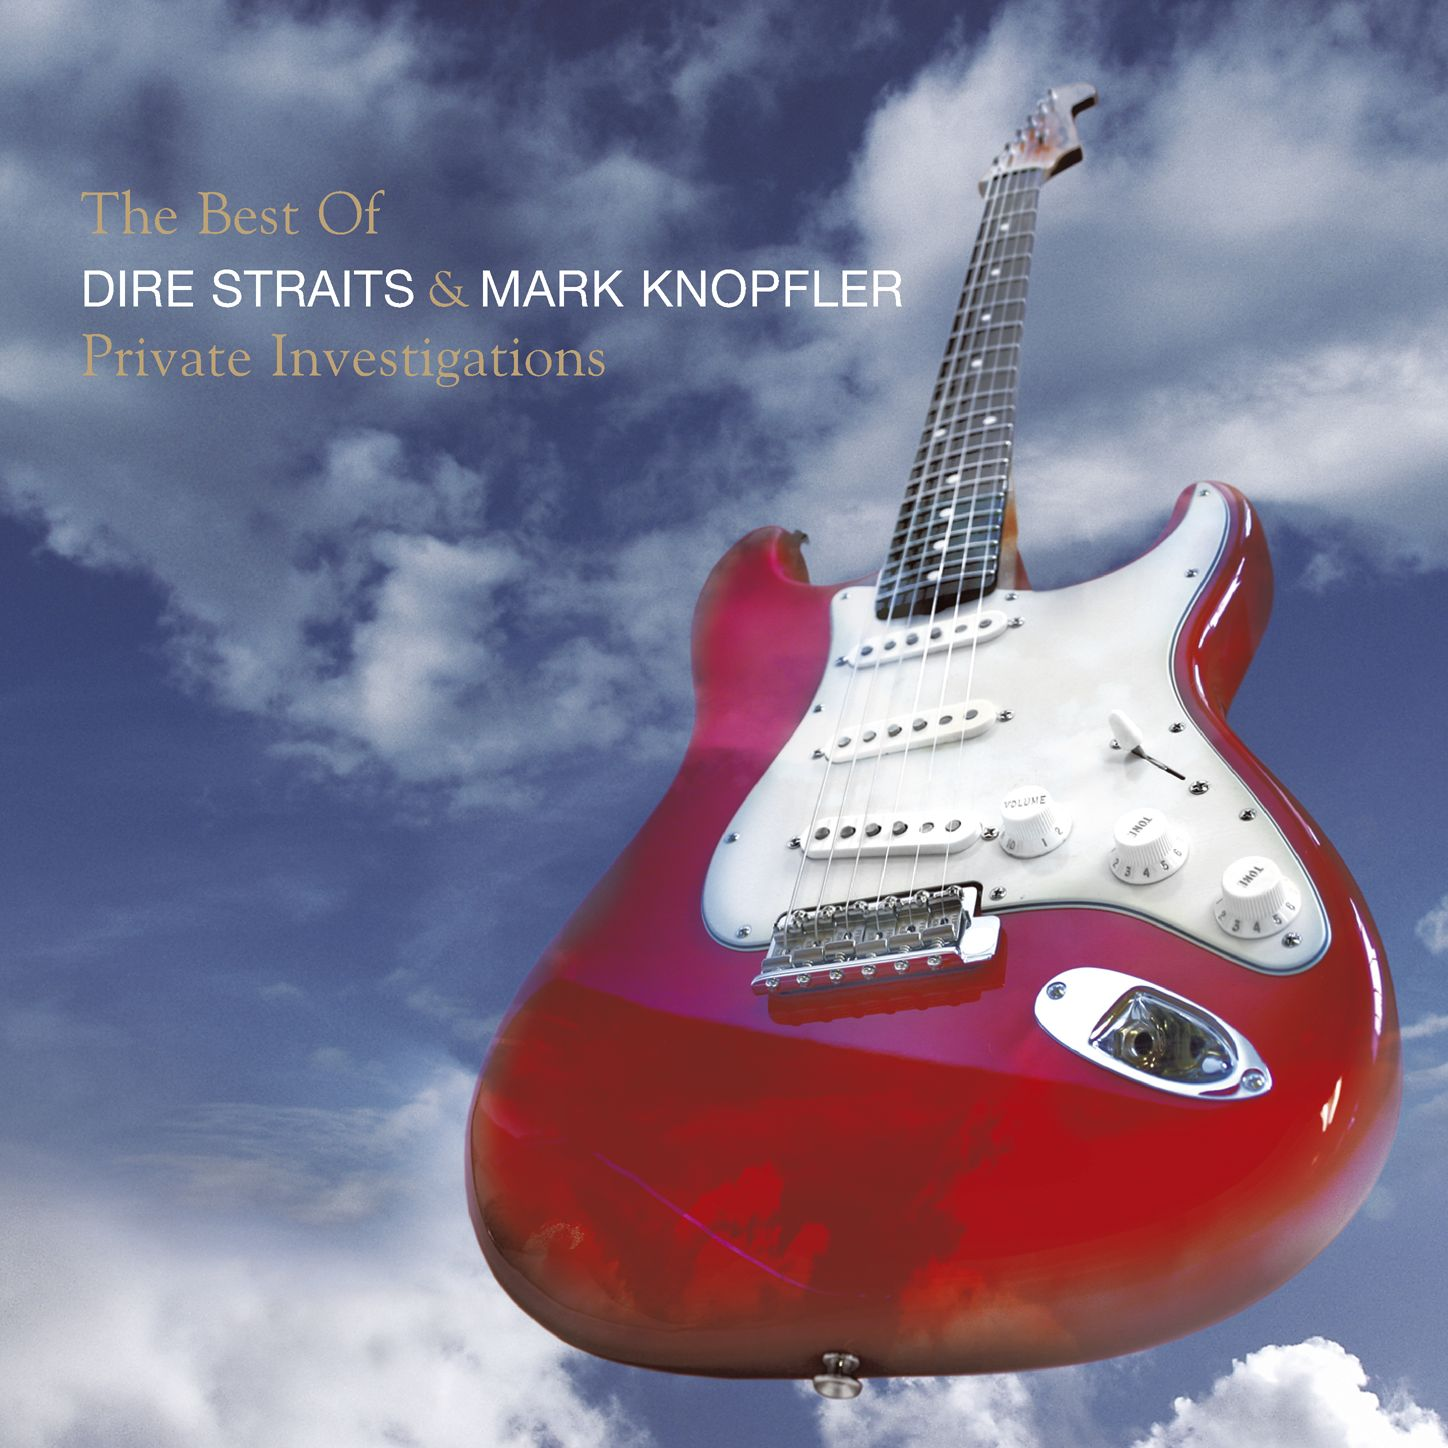 Listen Free to Dire Straits - Money for Nothing Radio | iHeartRadio